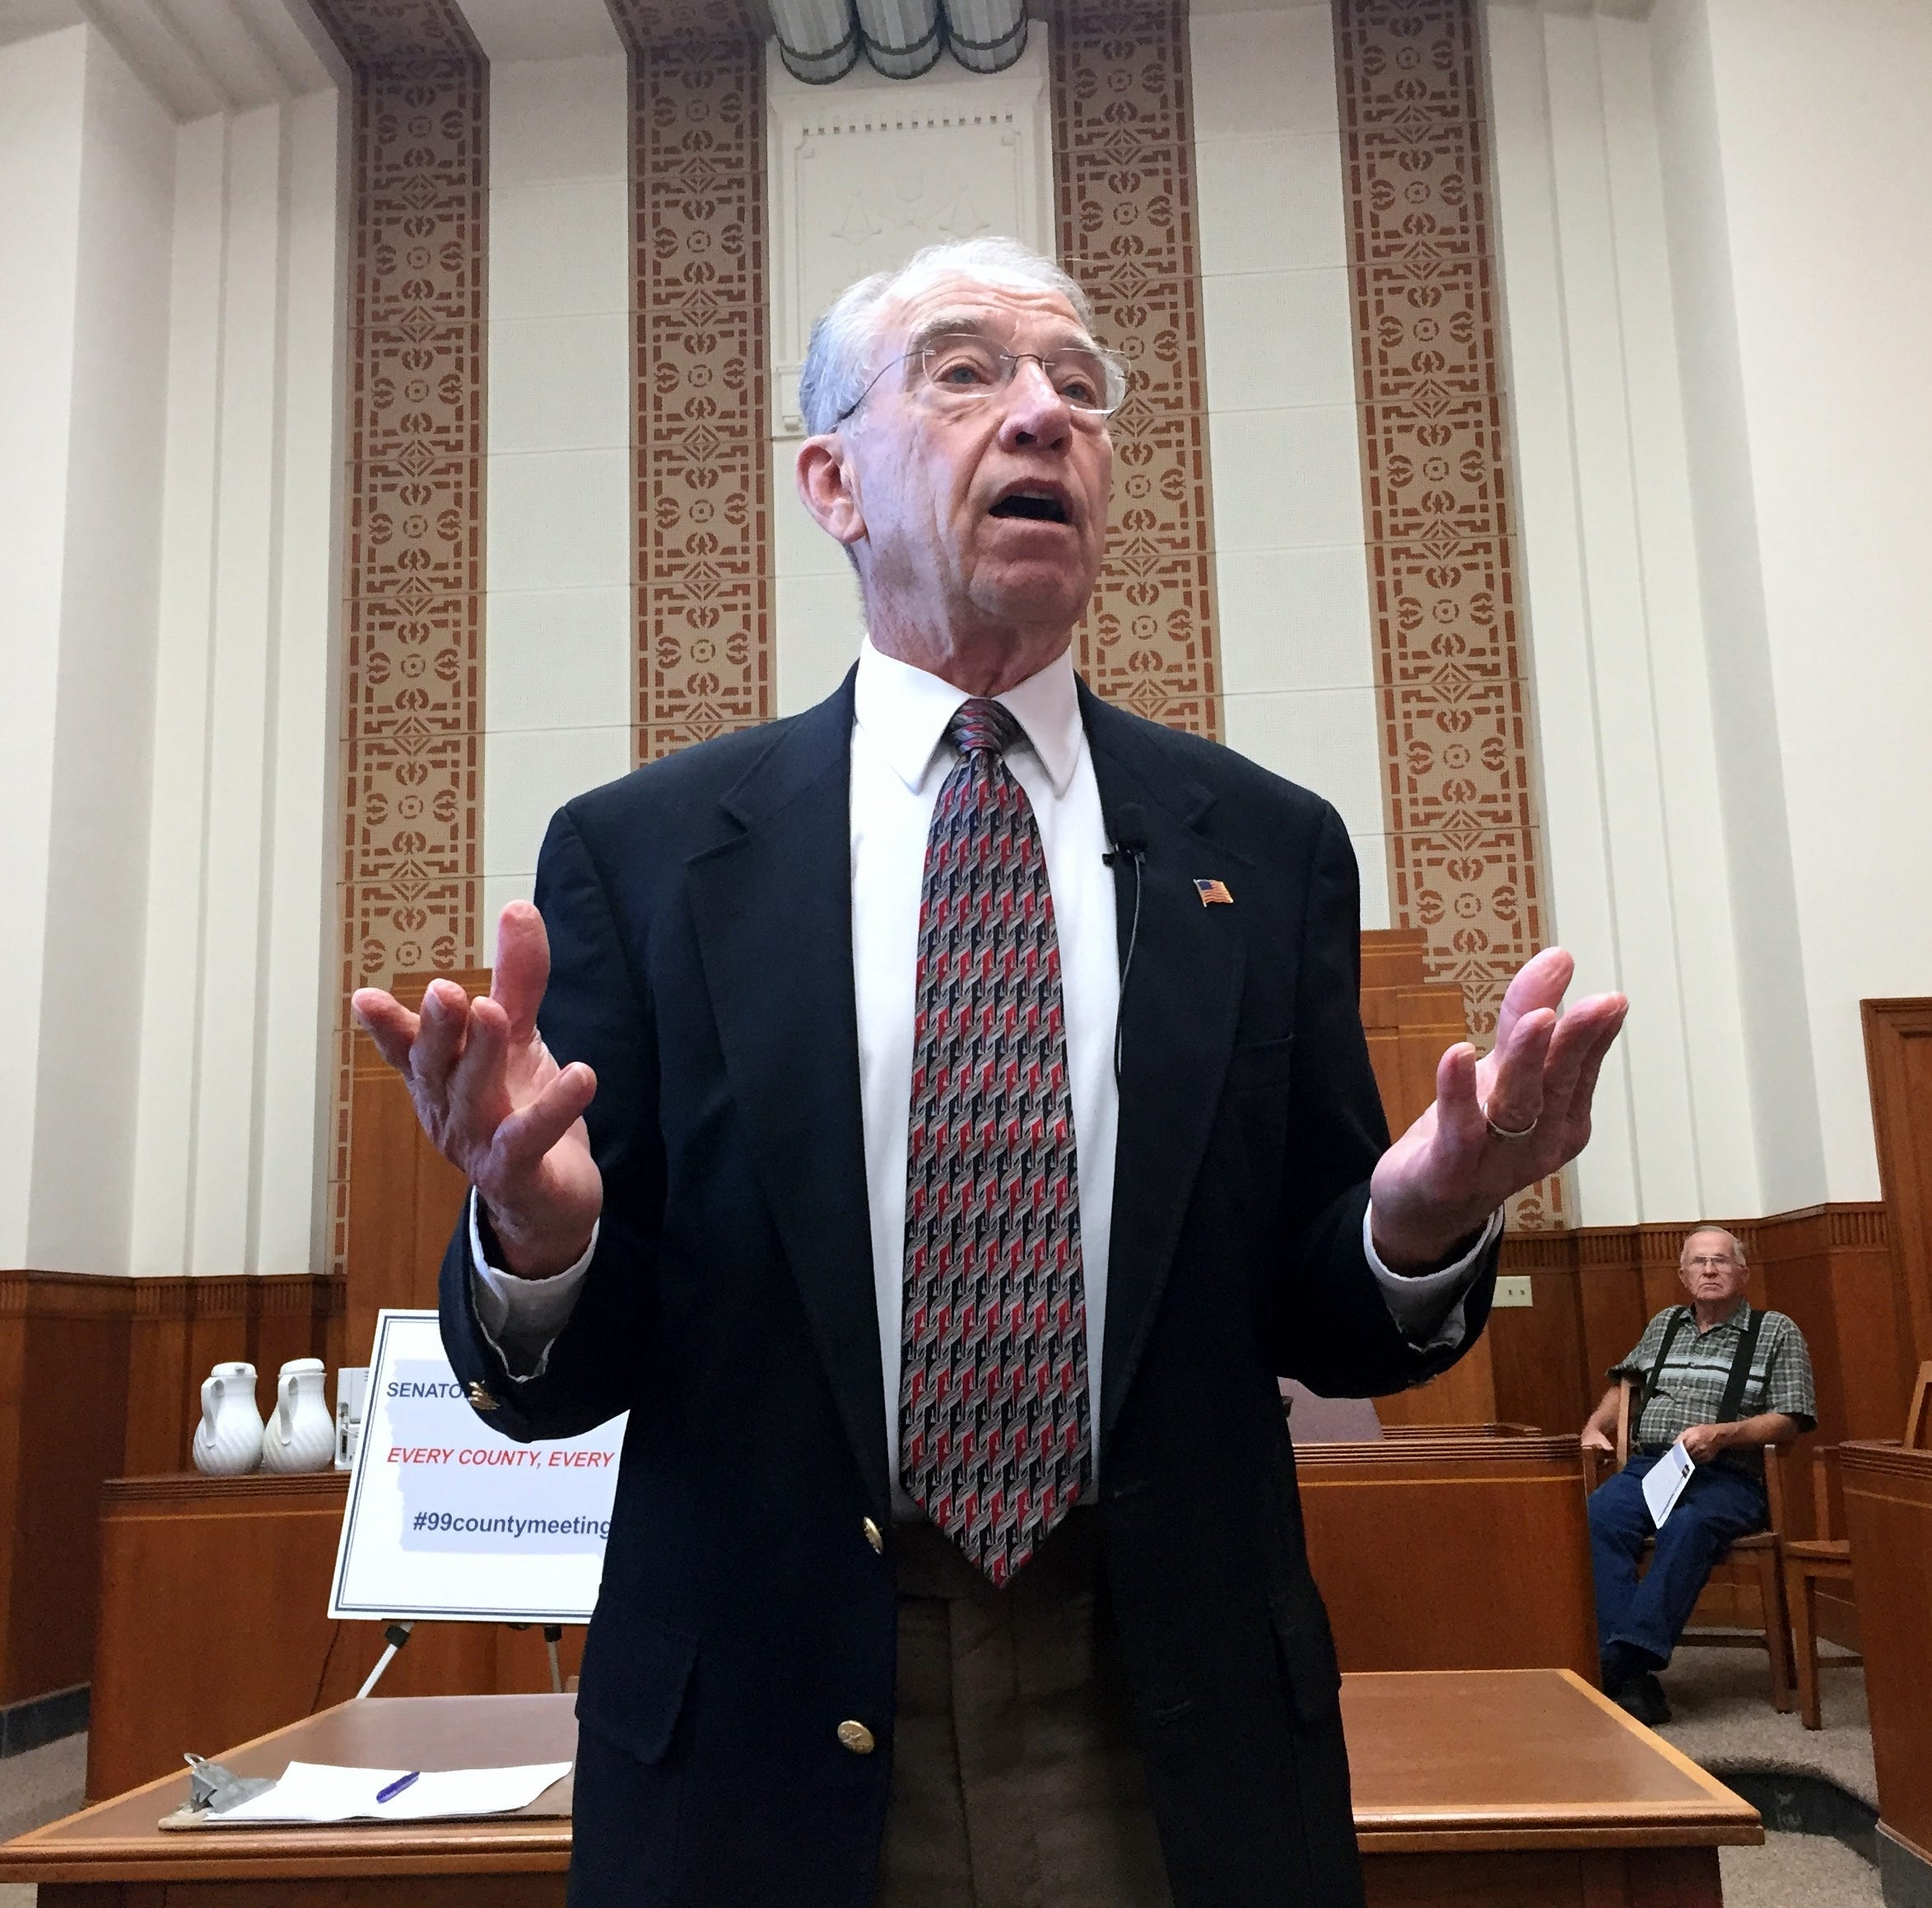 Sen. Grassley is not protecting seniors